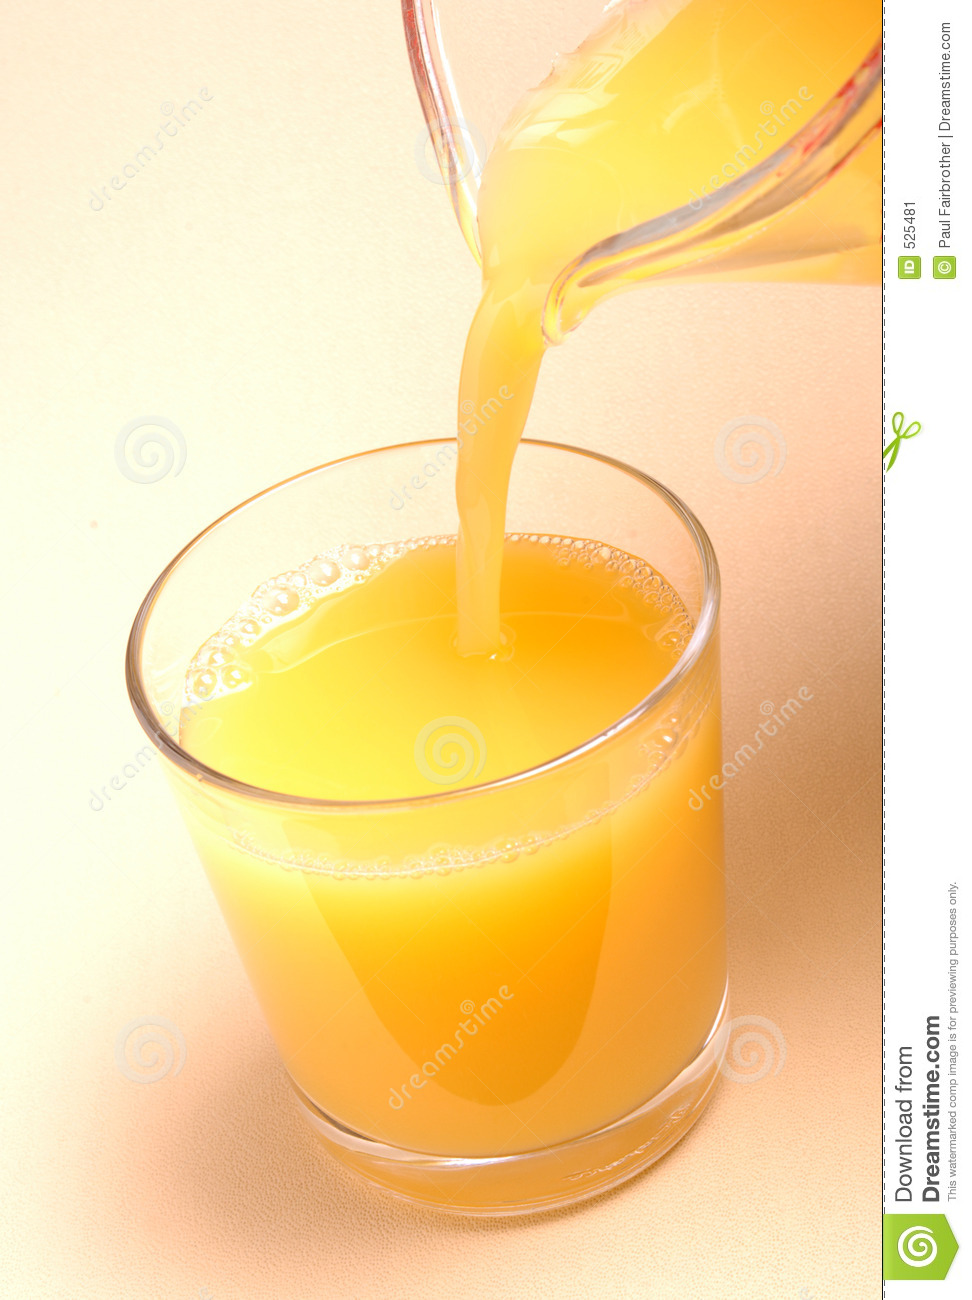 Stock Image Pouring Orange Juice Glass Image525481 on orange juice pitcher